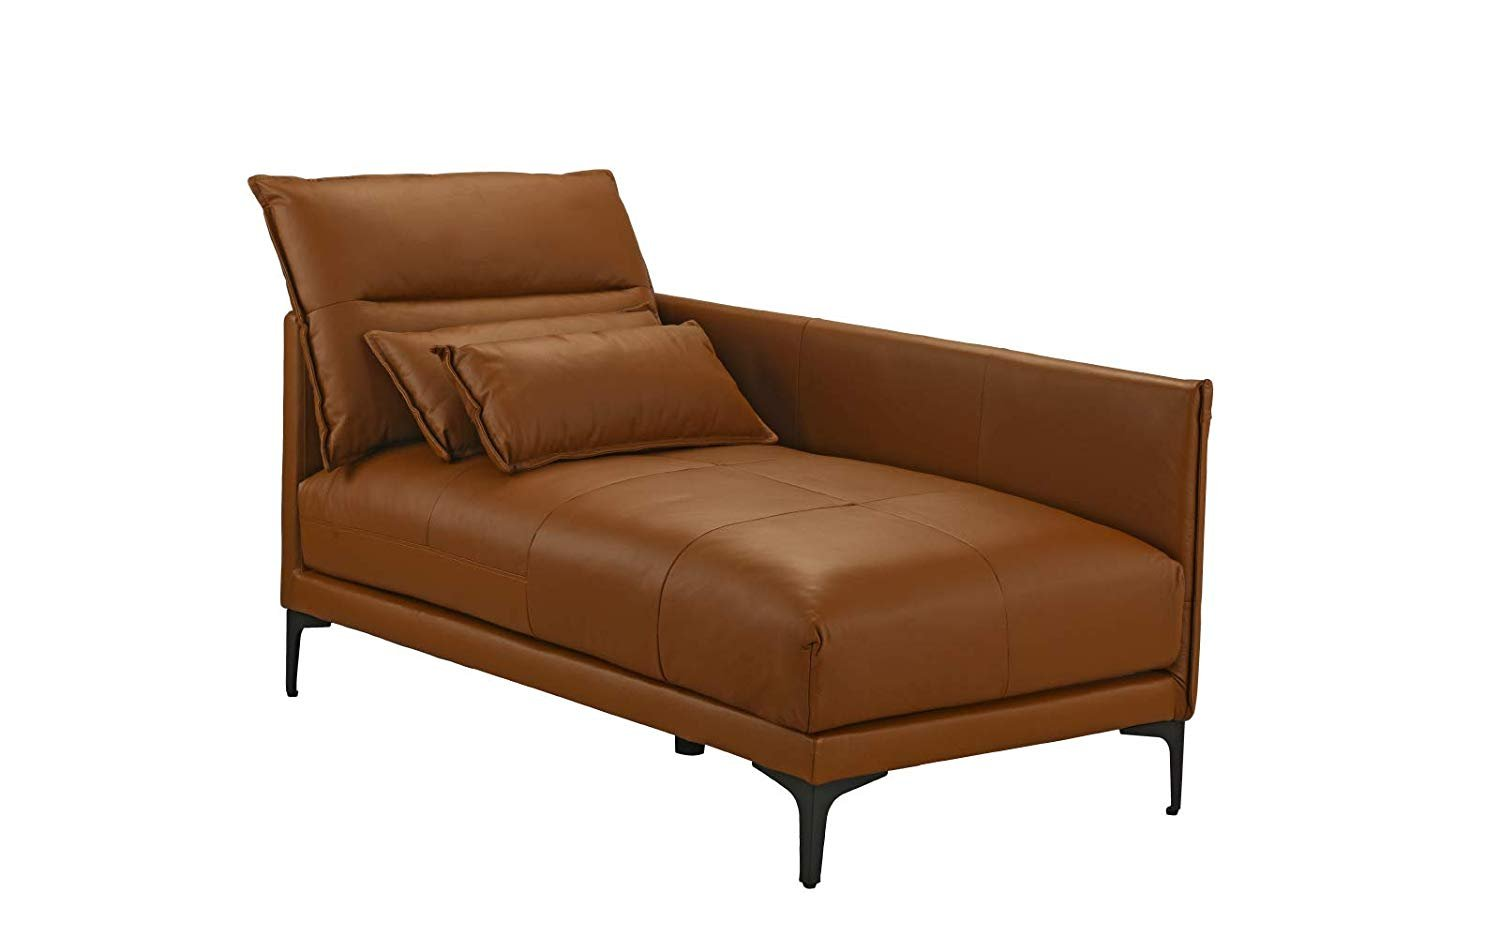 mid century modern living room leather chaise lounge camel brown walmart com